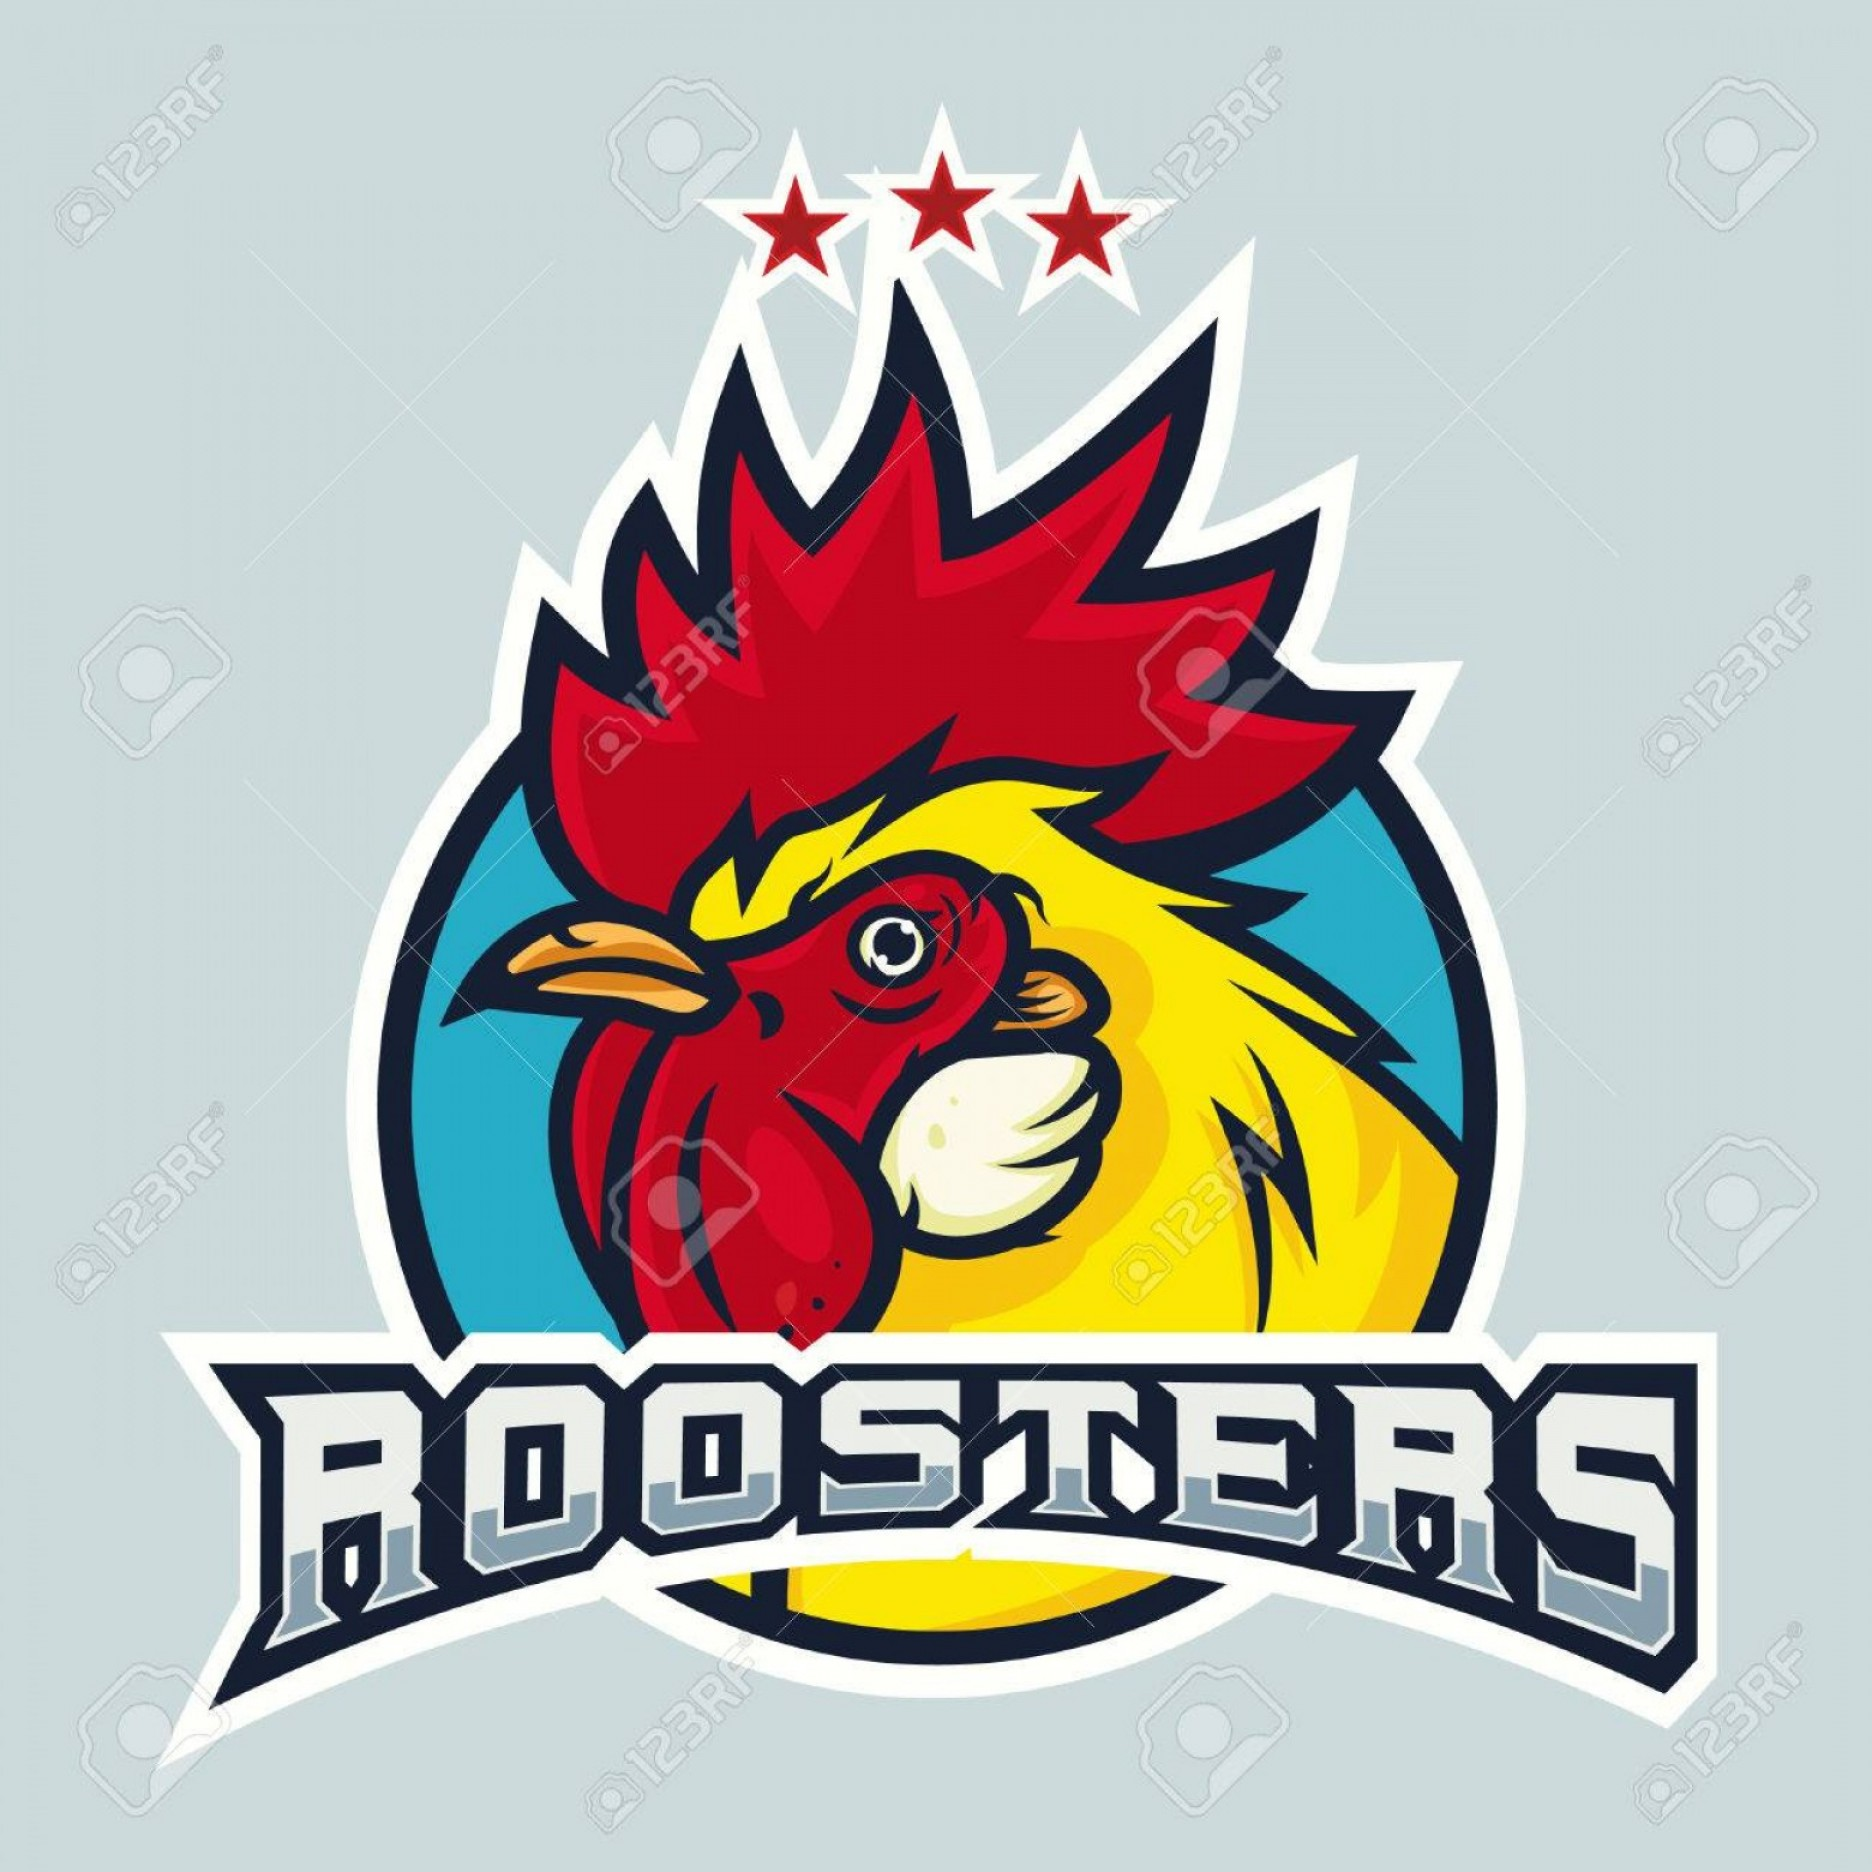 Vector Mascot Logos: Photostock Vector Detailed Sports Logo Template With Angry Face Emotion Rooster Mascot For College School Sport Team L